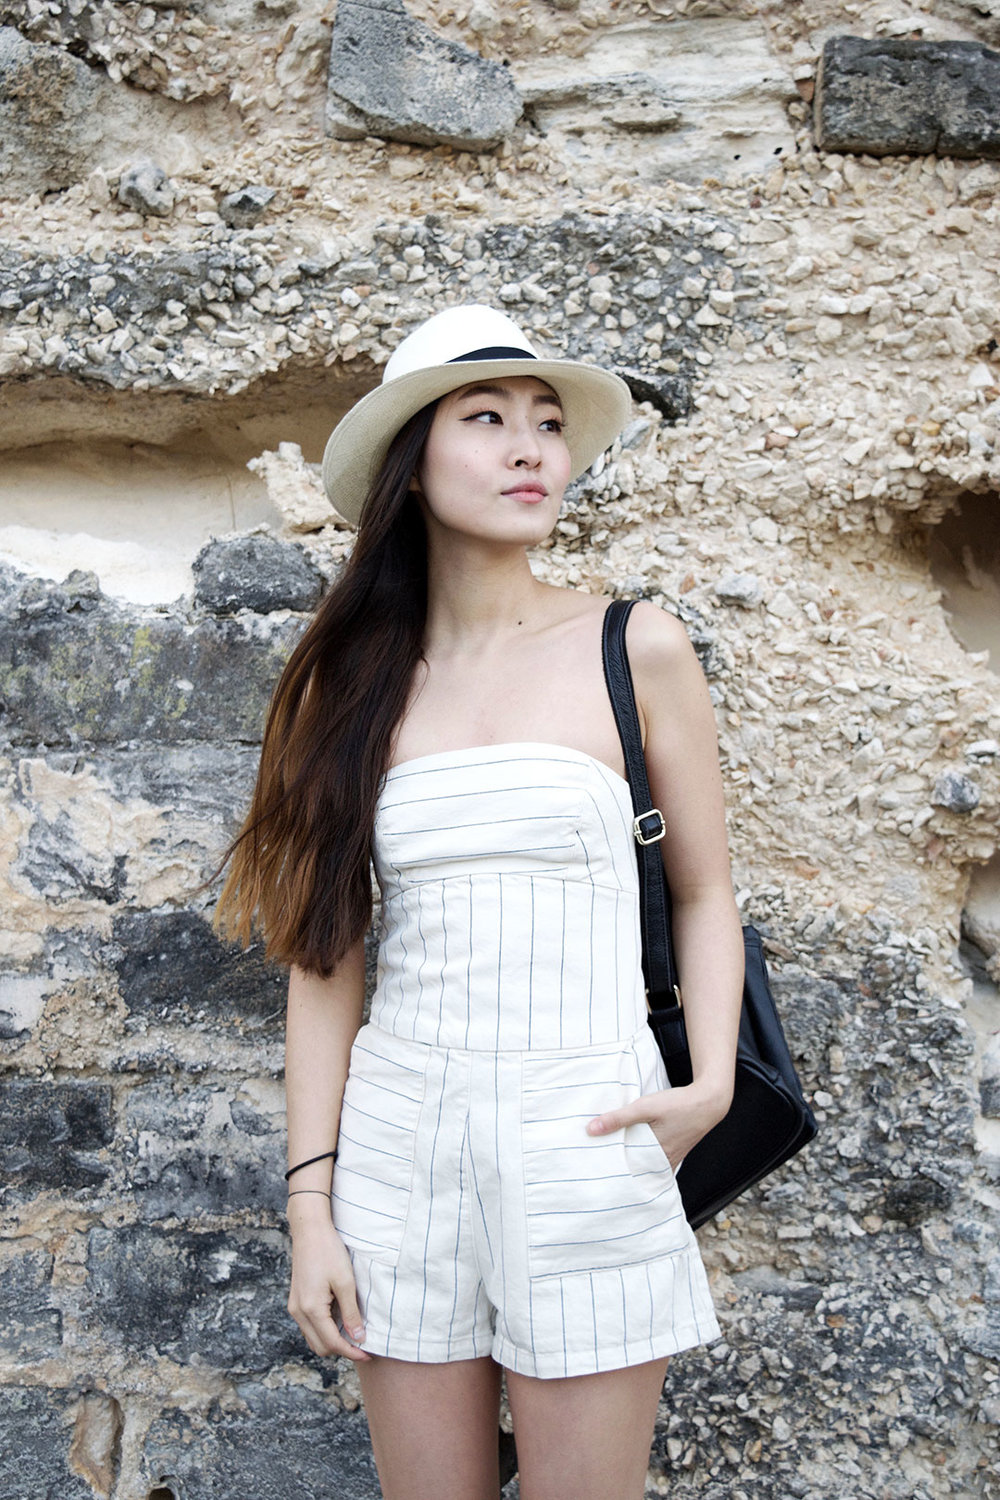 Rocking a Striped Romper in Bermuda | CASUAL VACATION OUTFIT | SPRING OUTFIT | SUMMER OUTFIT | SUMMER STYLE | OUTFIT PERFECT FOR VACATION | TRAVEL OUTFIT | SPRING FASHION | SUMMER FASHION | ZARA ROMPER | ZARA ESPADRILLES | SENSI STUDIO PANAMA HAT |